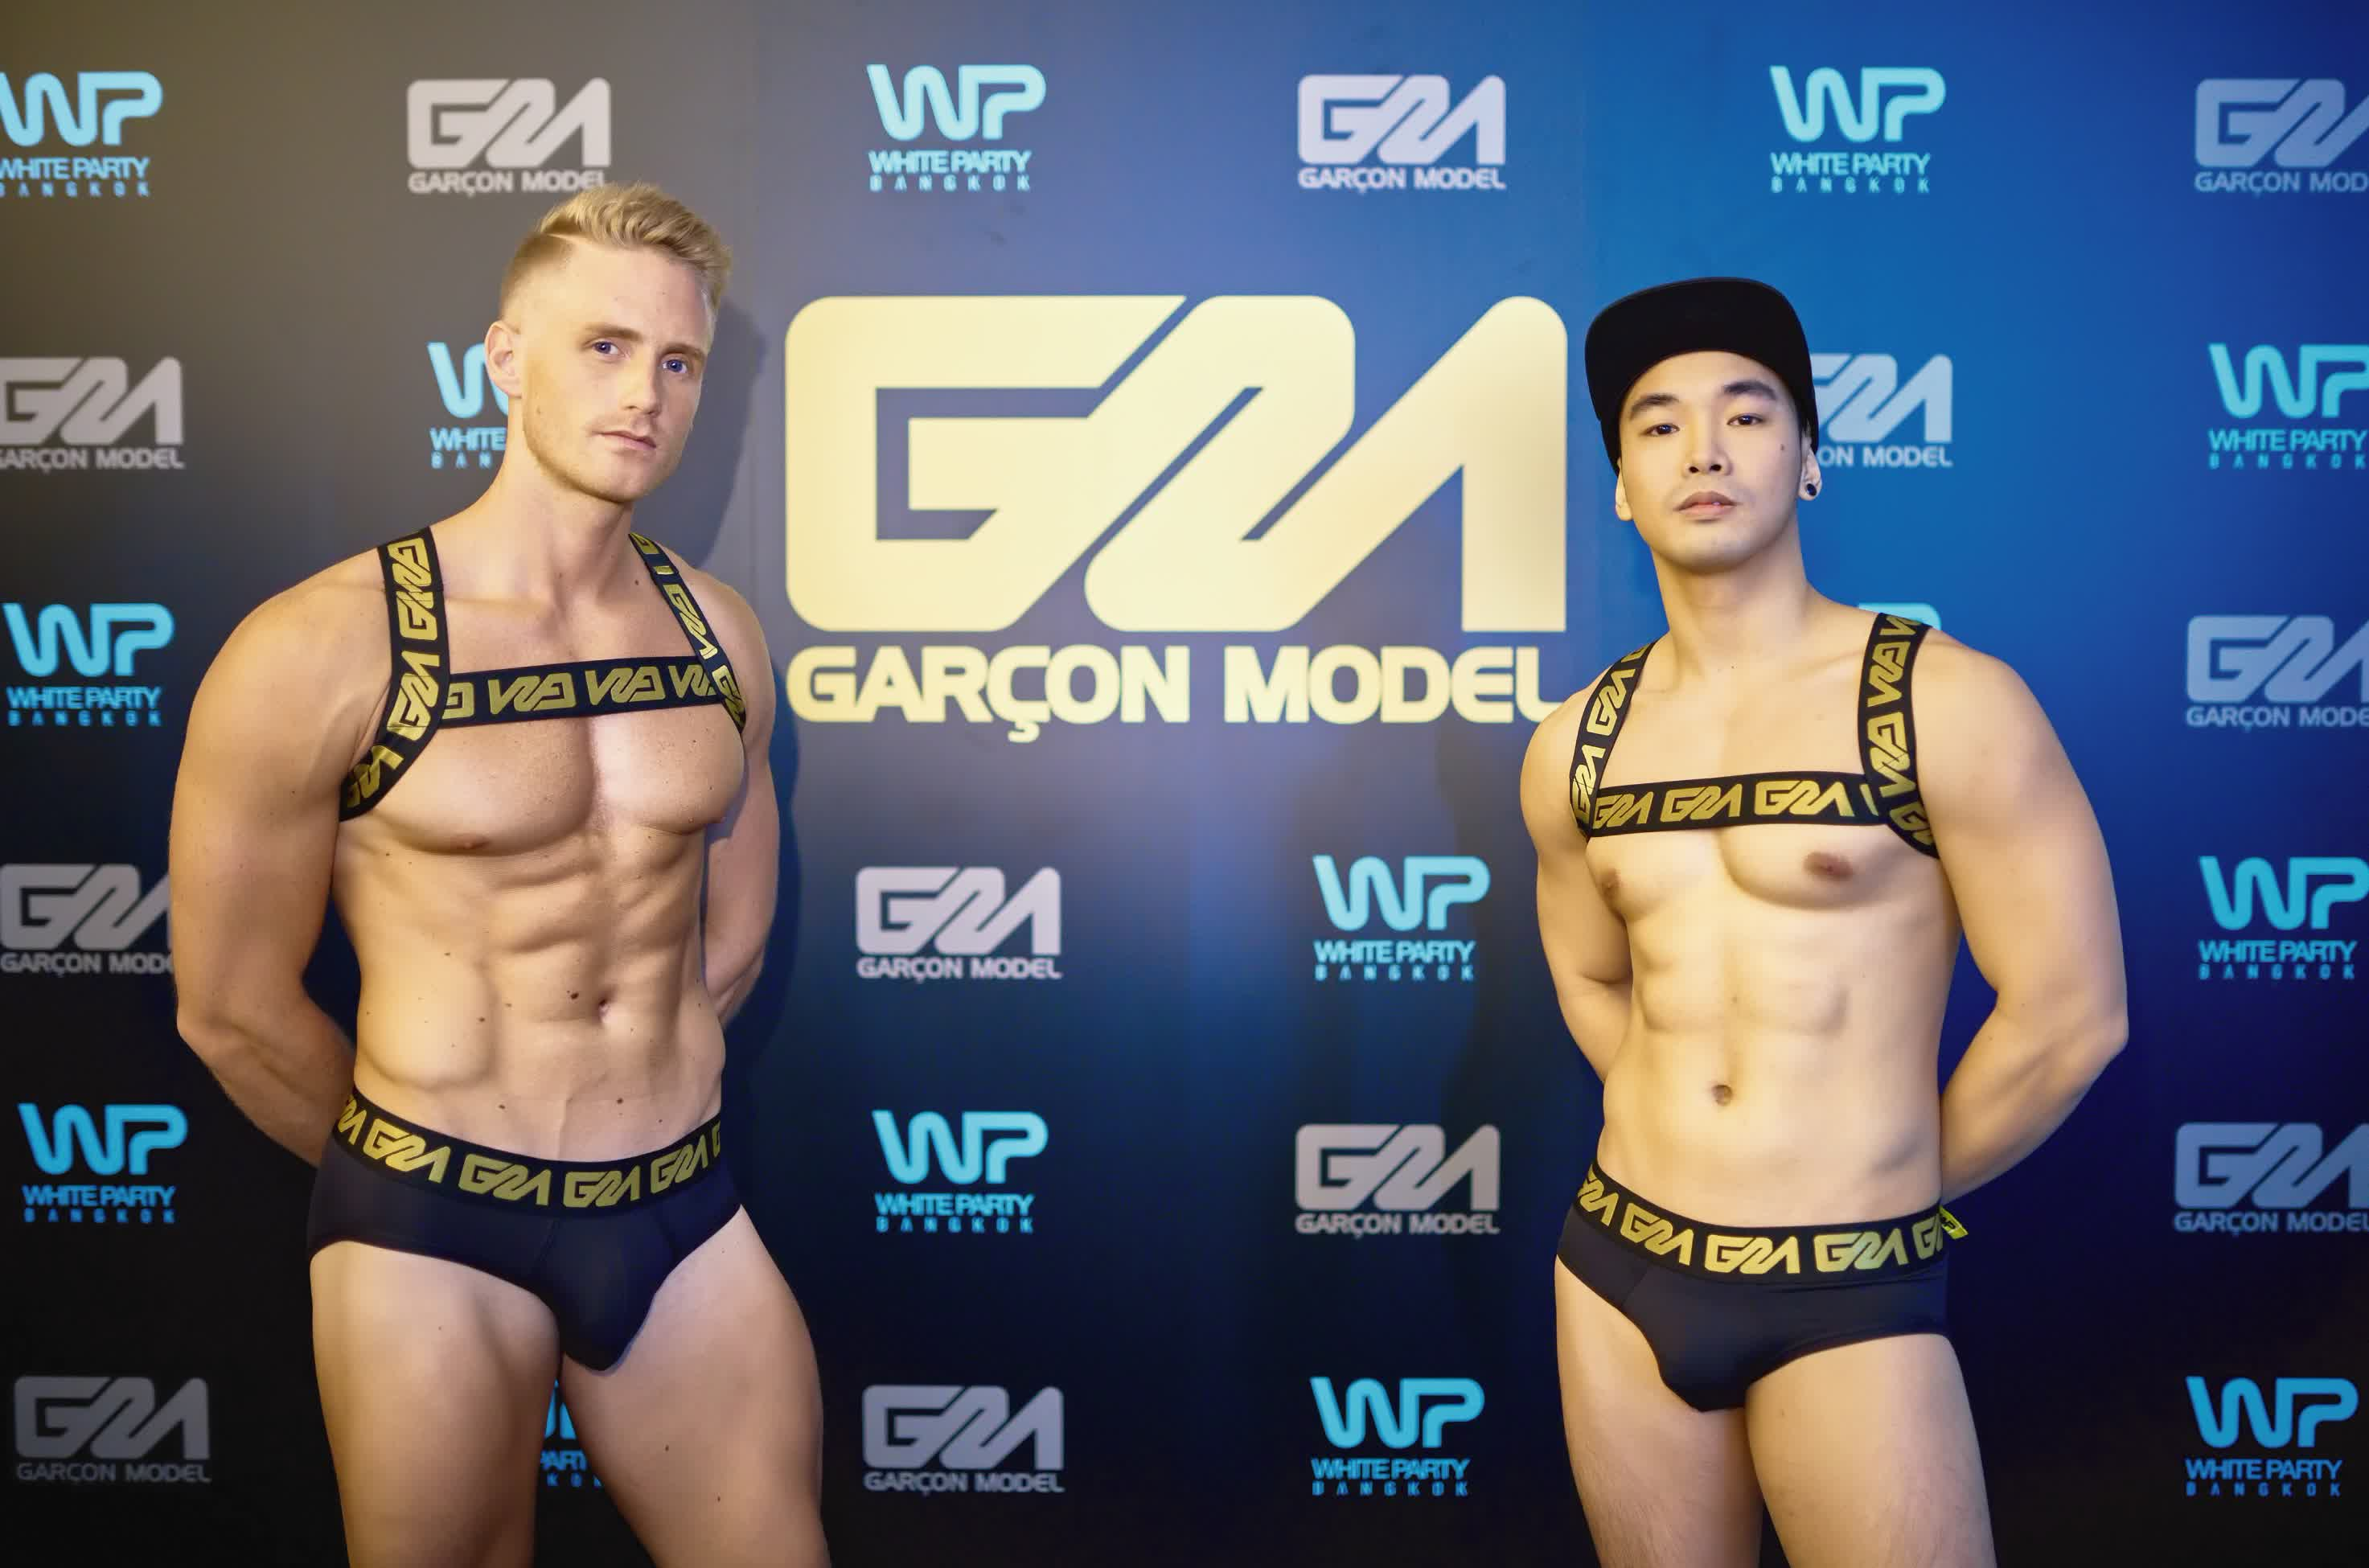 Garçon Sexy Men's Underwear and Swimwear